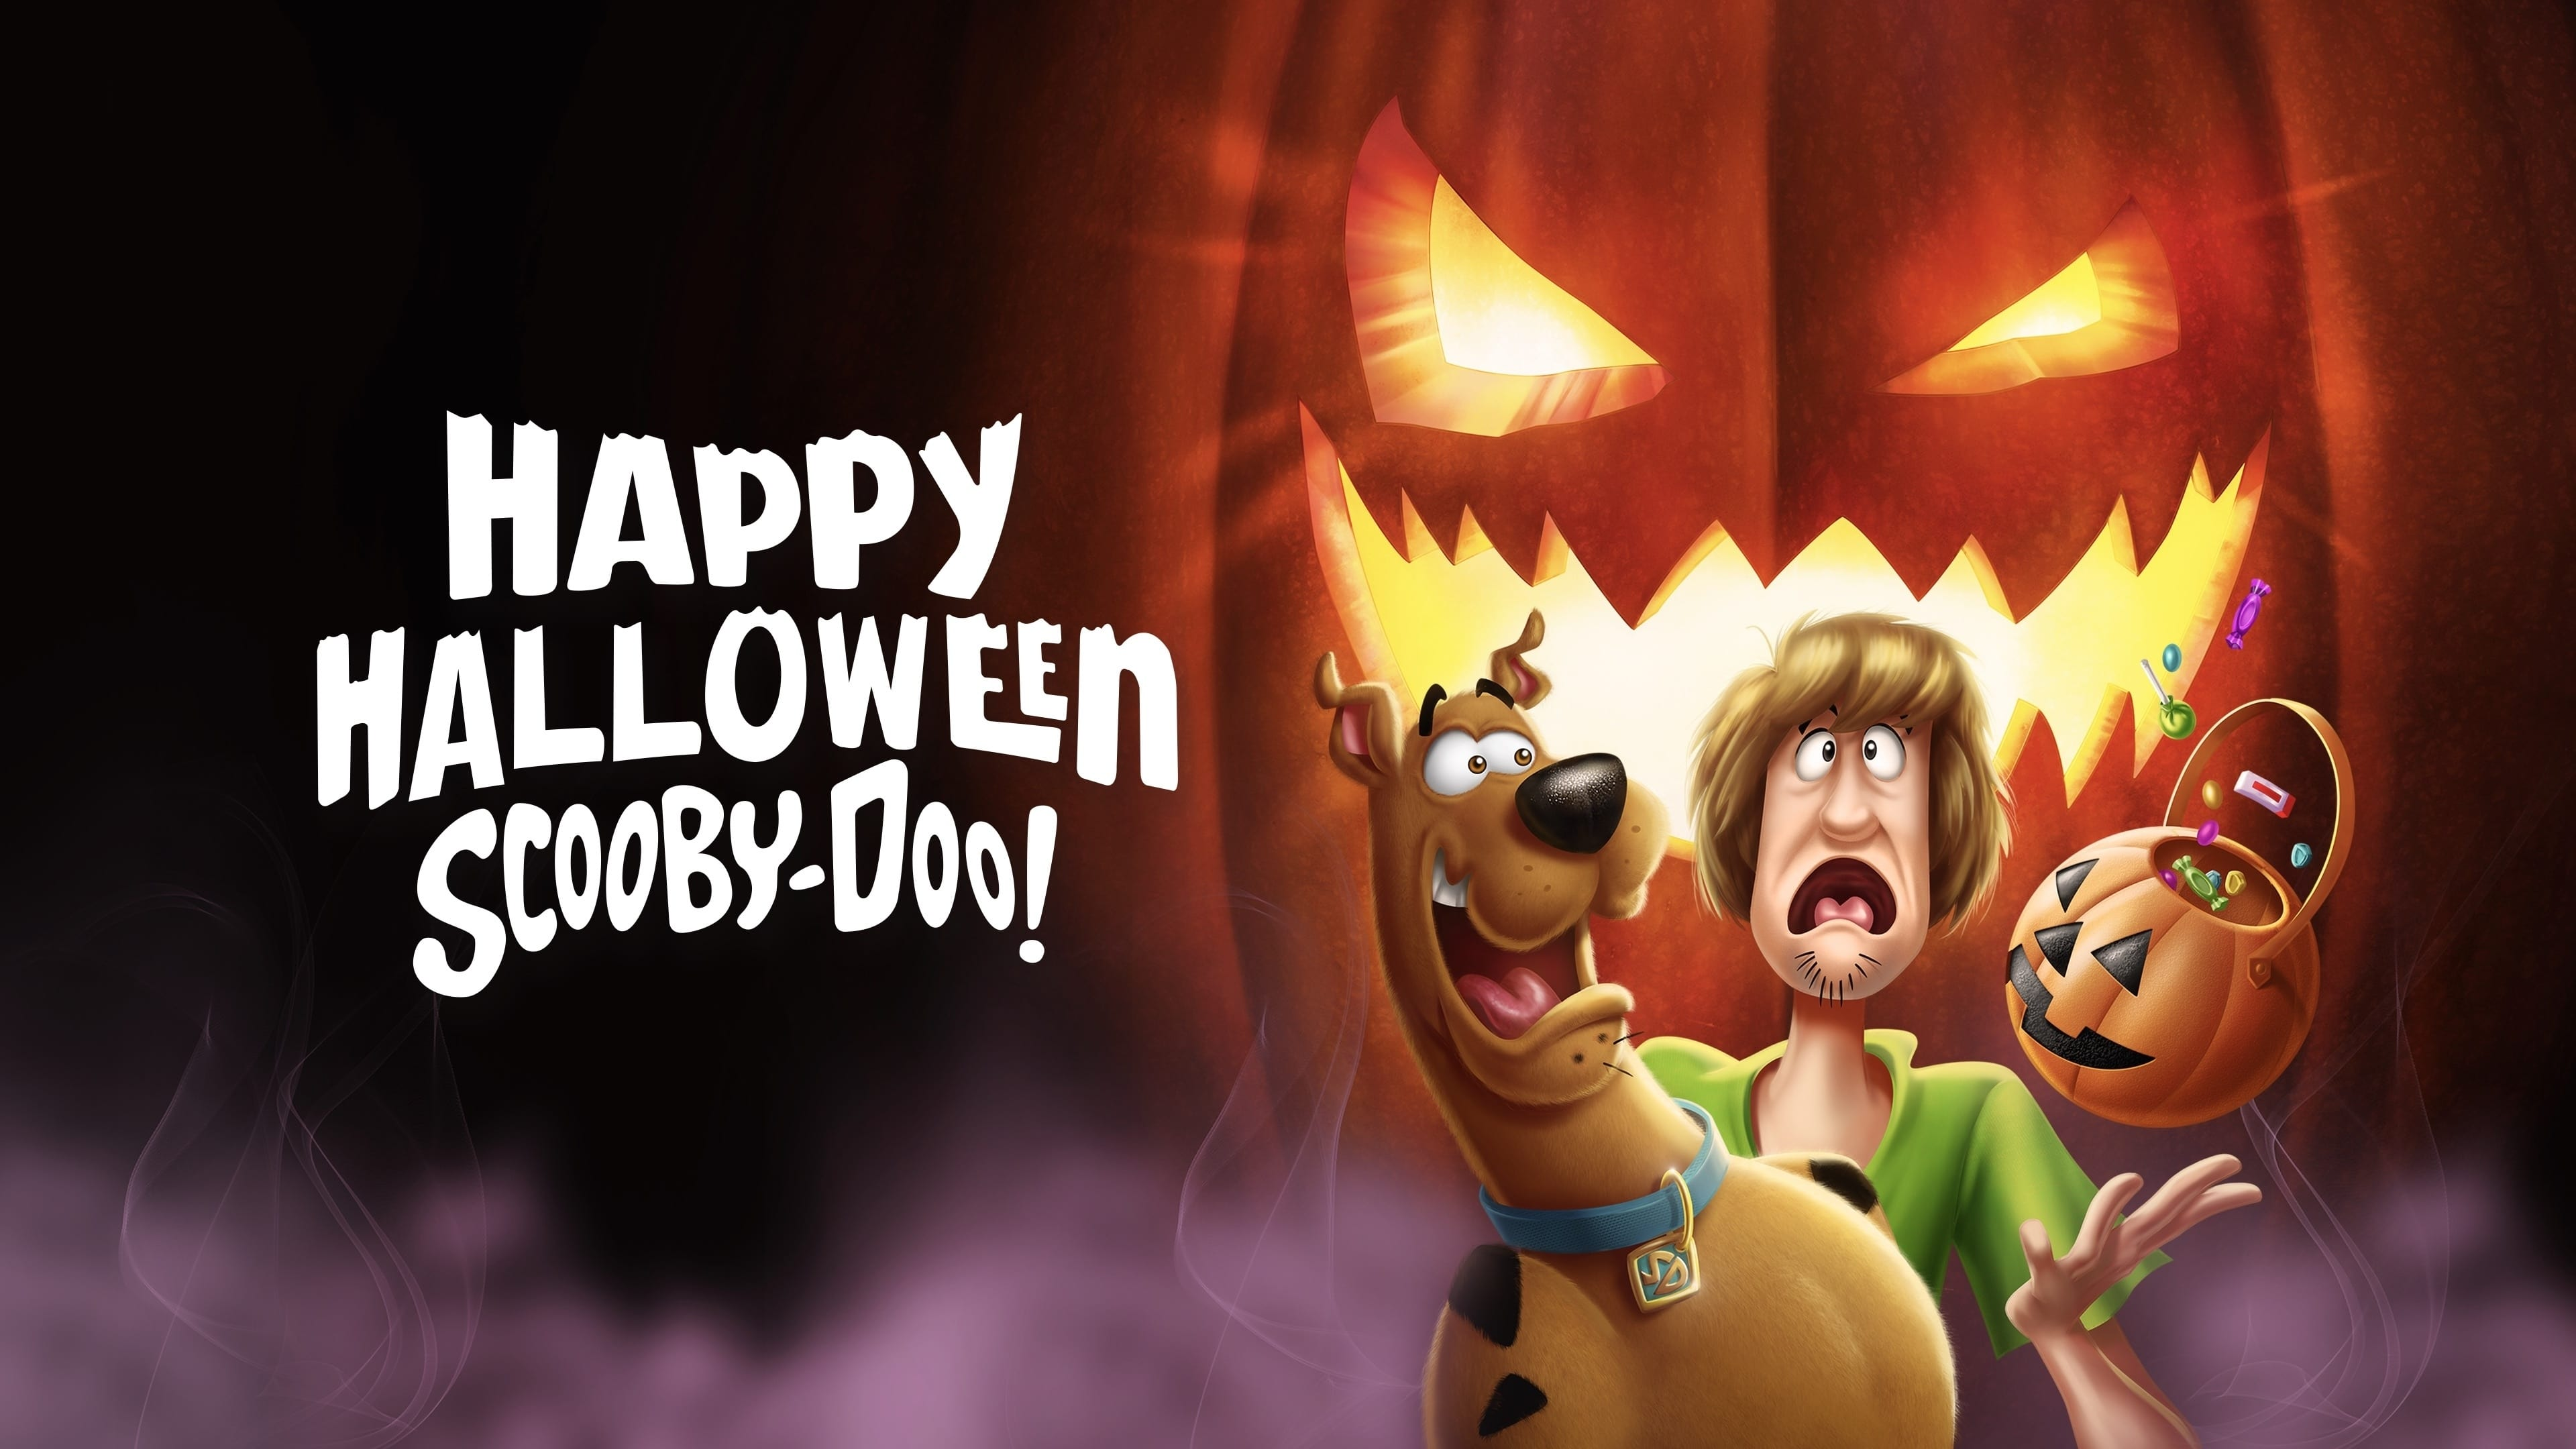 Watch Happy Halloween, Scooby-Doo! (2020) Full Movie Online Free | Stream Free Movies & TV Shows